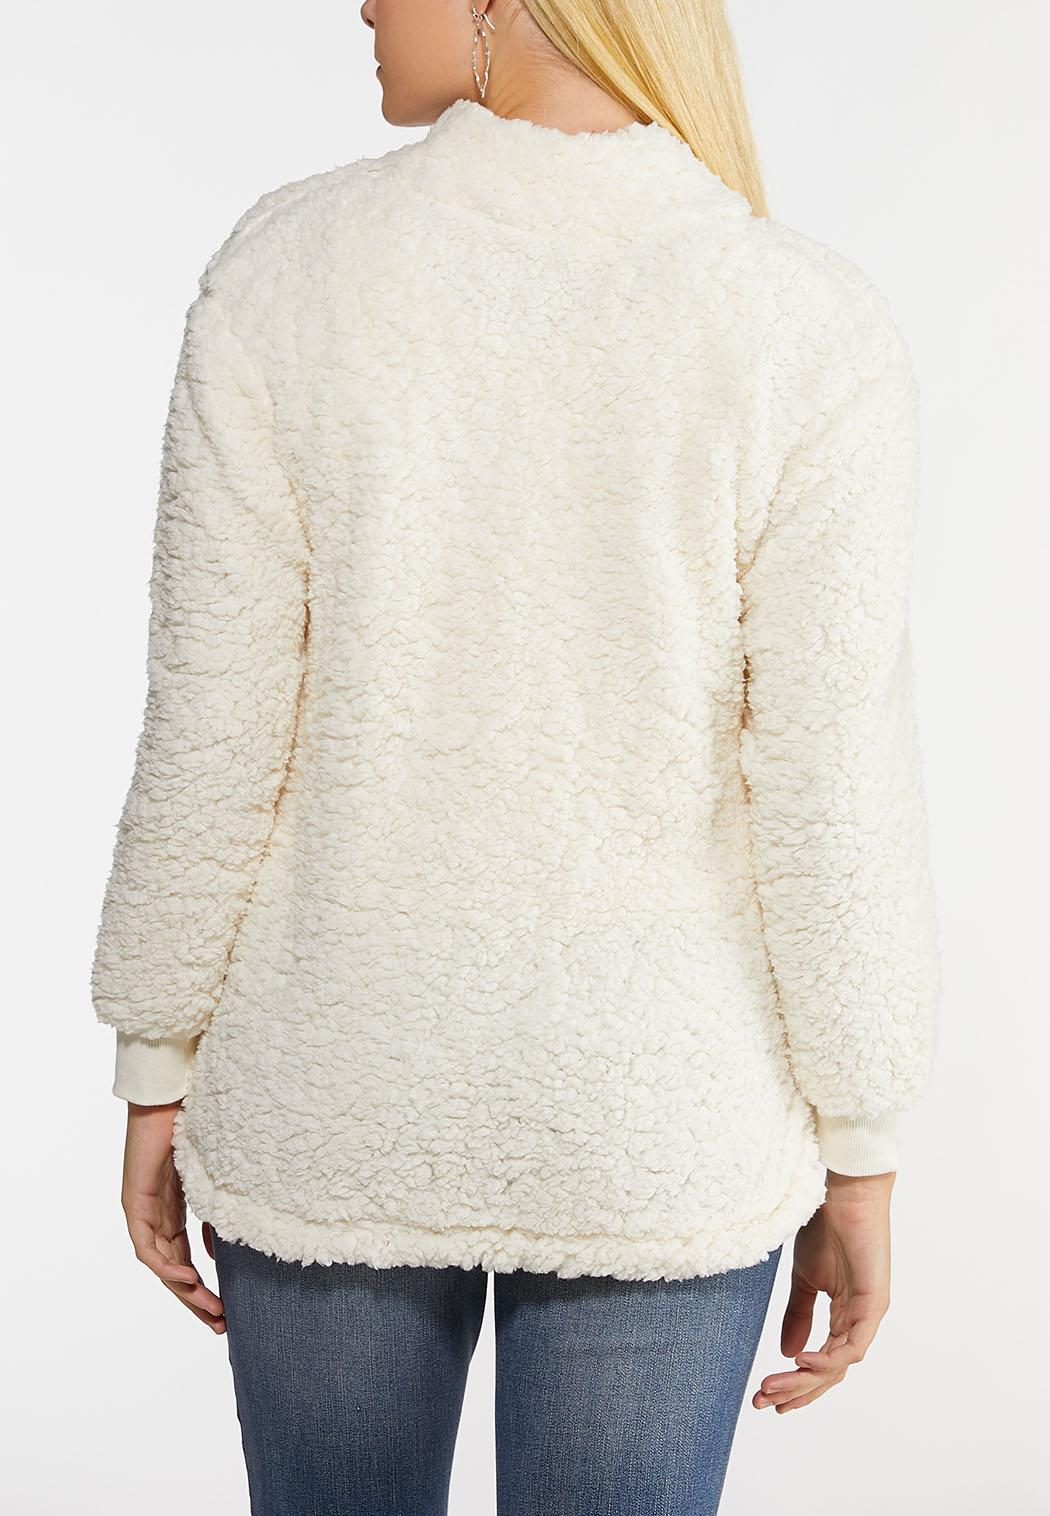 Cozy Fleece Pullover Top (Item #44047625)